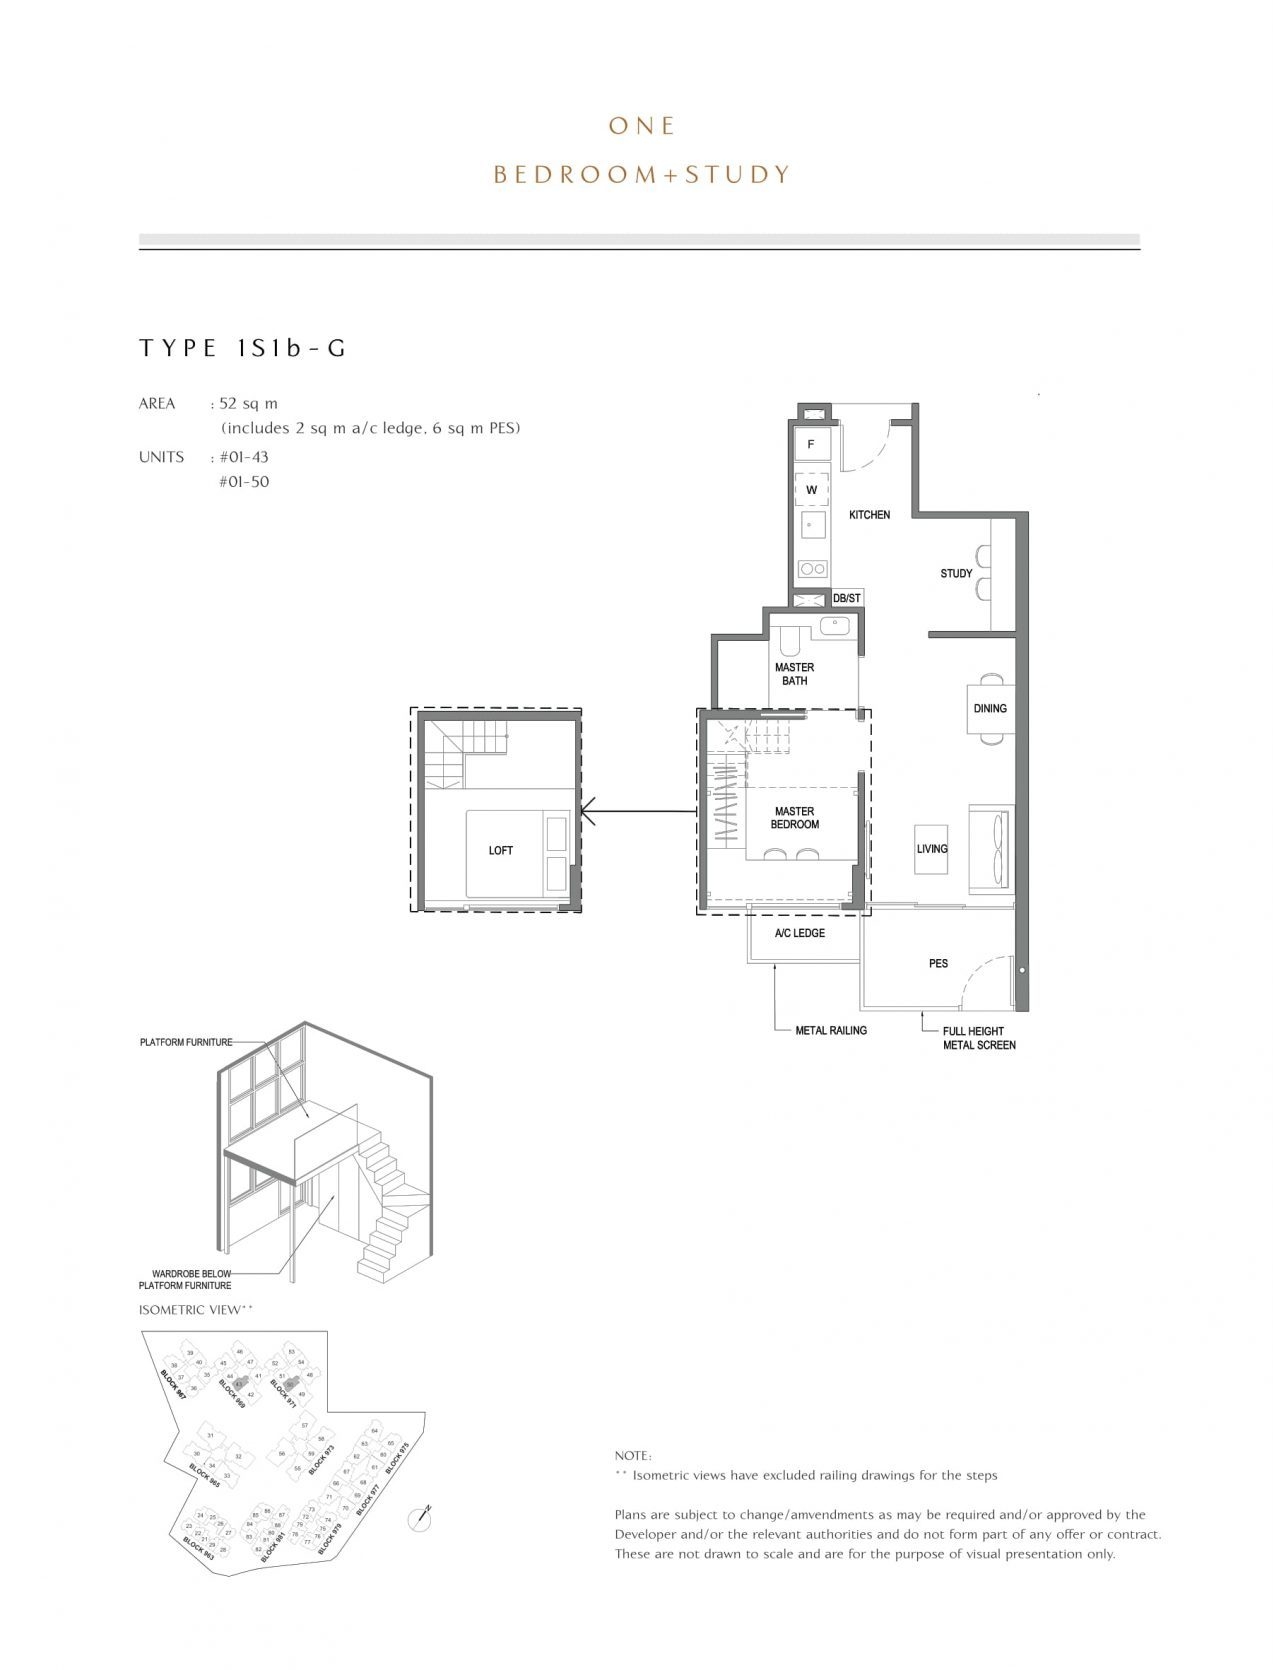 Parc Komo's one-bedroom + study types